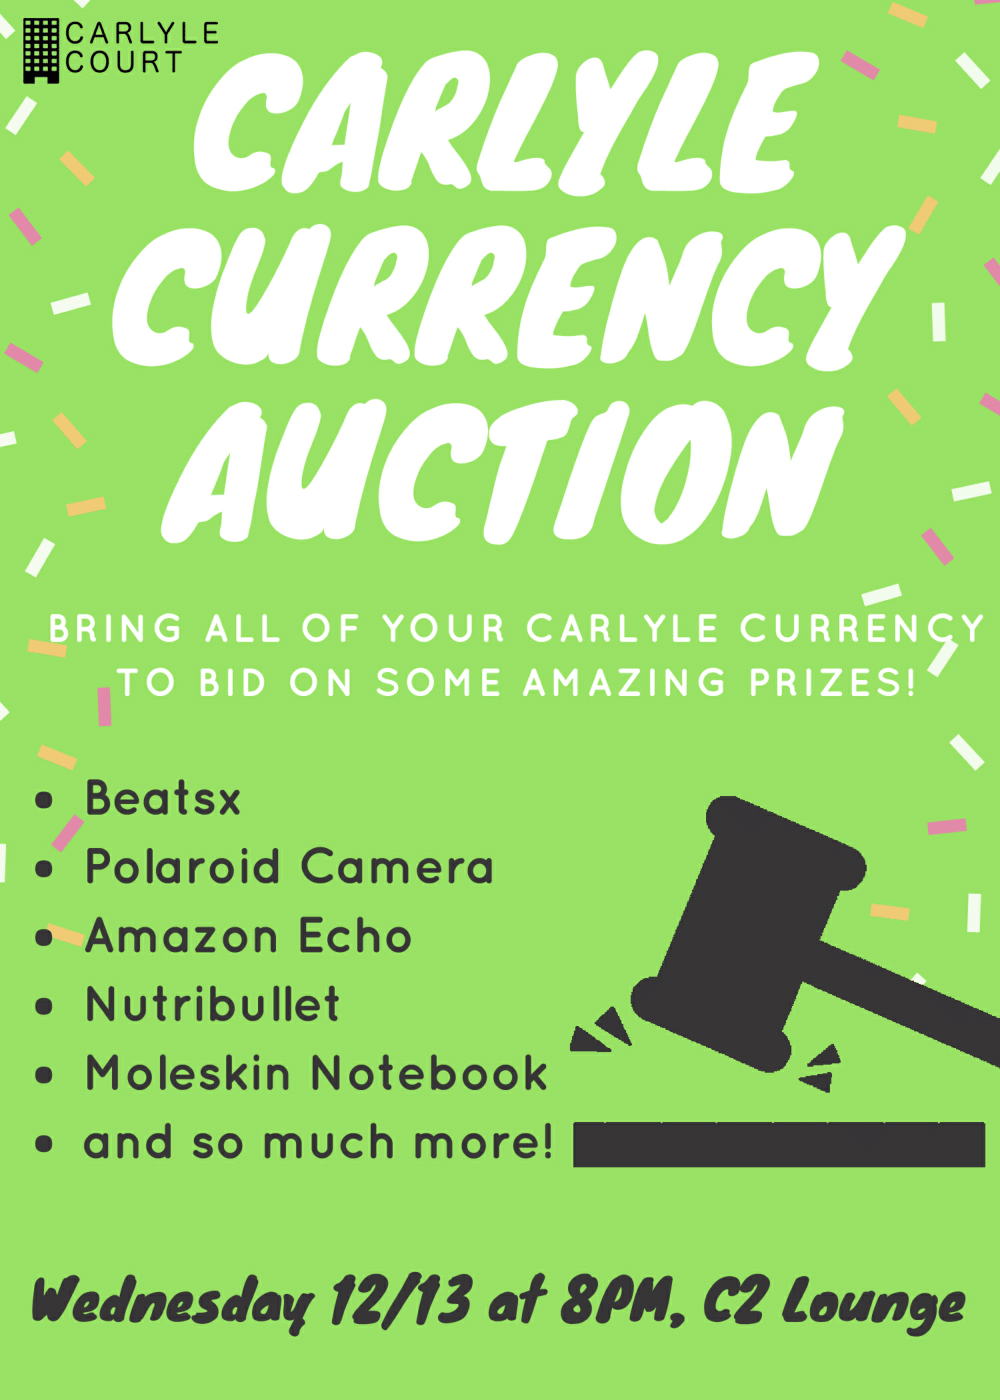 Embassy Currency Auction flyer-1.png